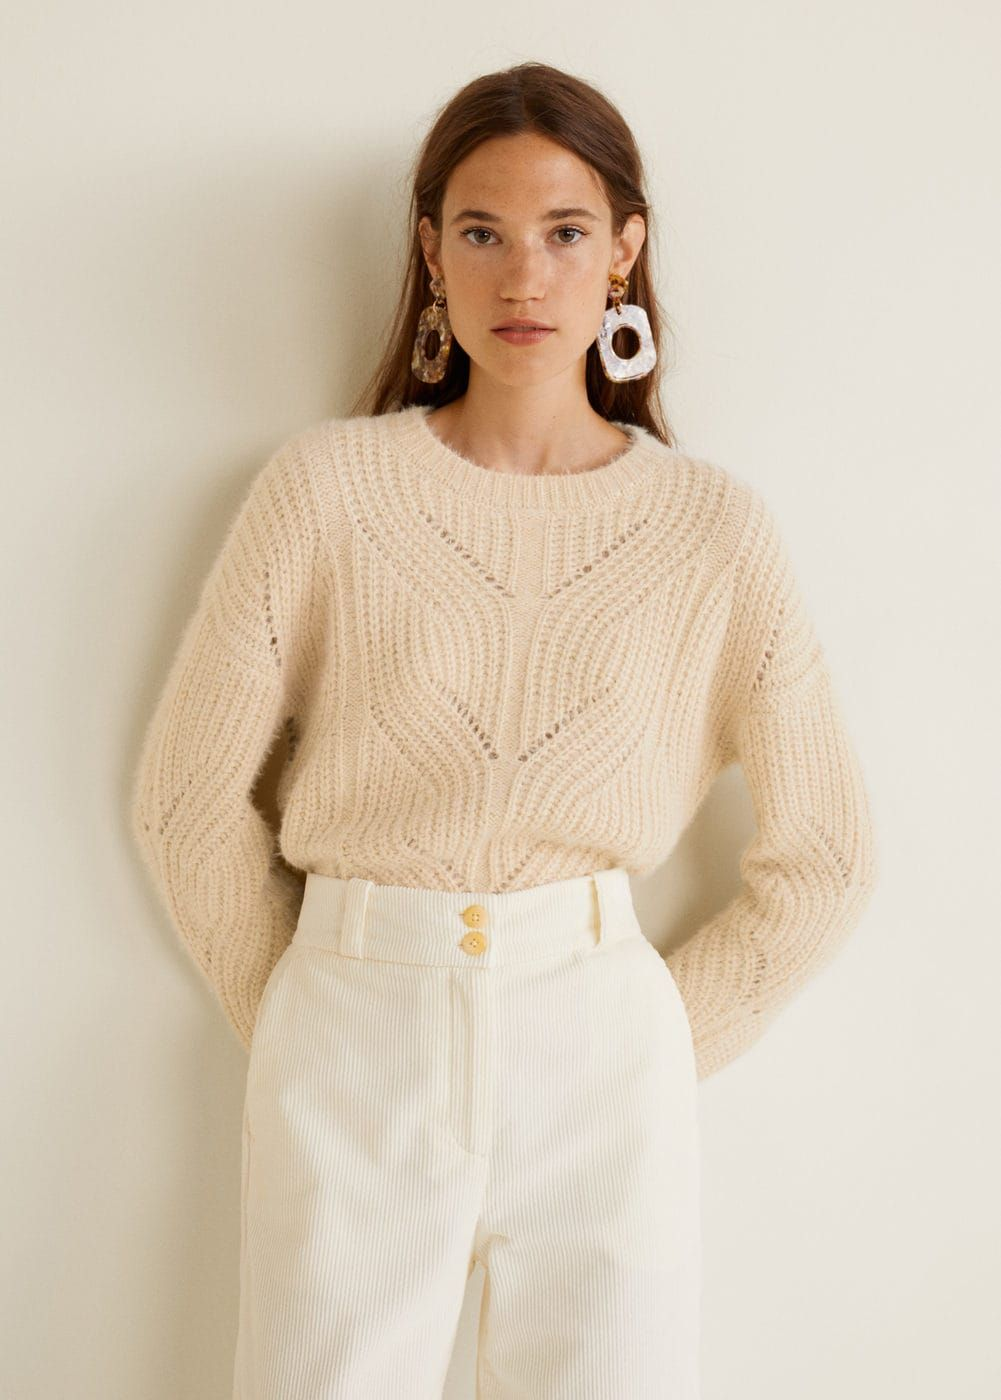 Thick knitted fabric Knitted braided fabric Textured fabric Openwork  details Rounded neck Long sleeve Cable knit finish 8cf48f29e